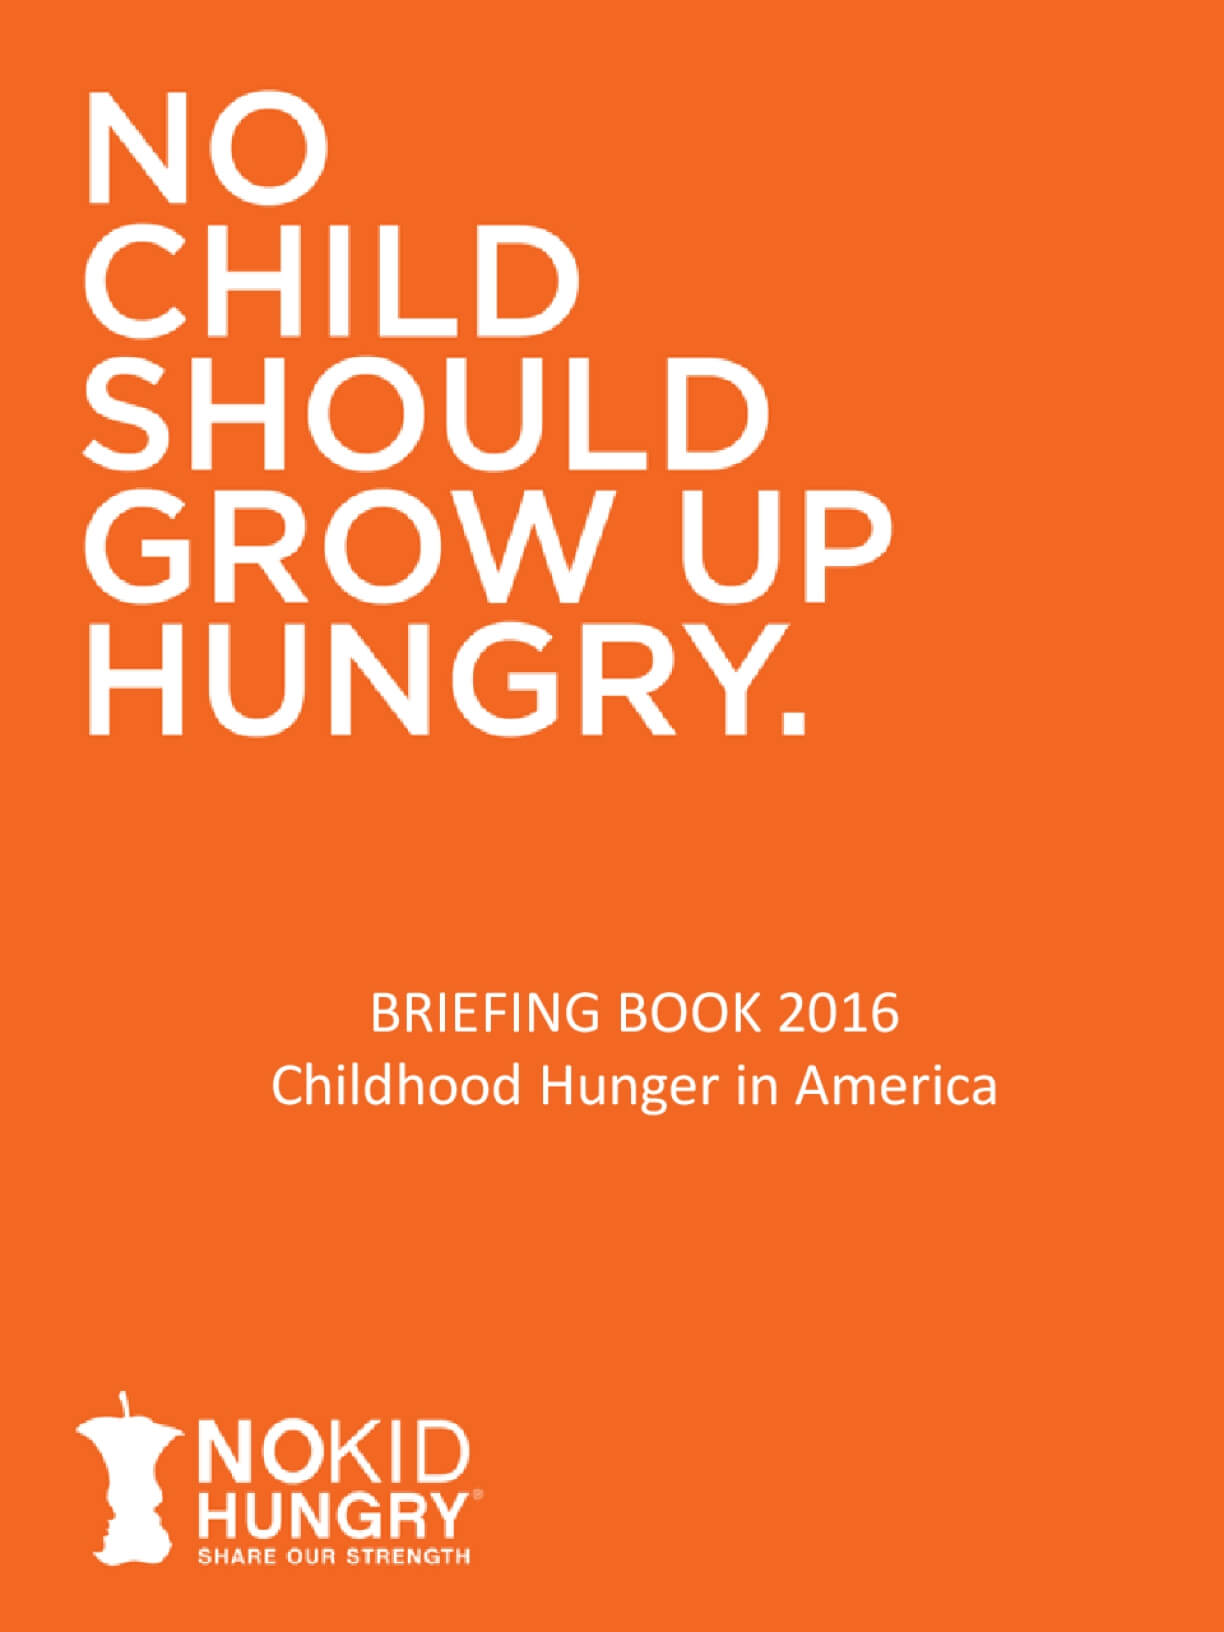 No Child Should Grow Up Hungry: Briefing Book 2016 Childhood Hunger in America